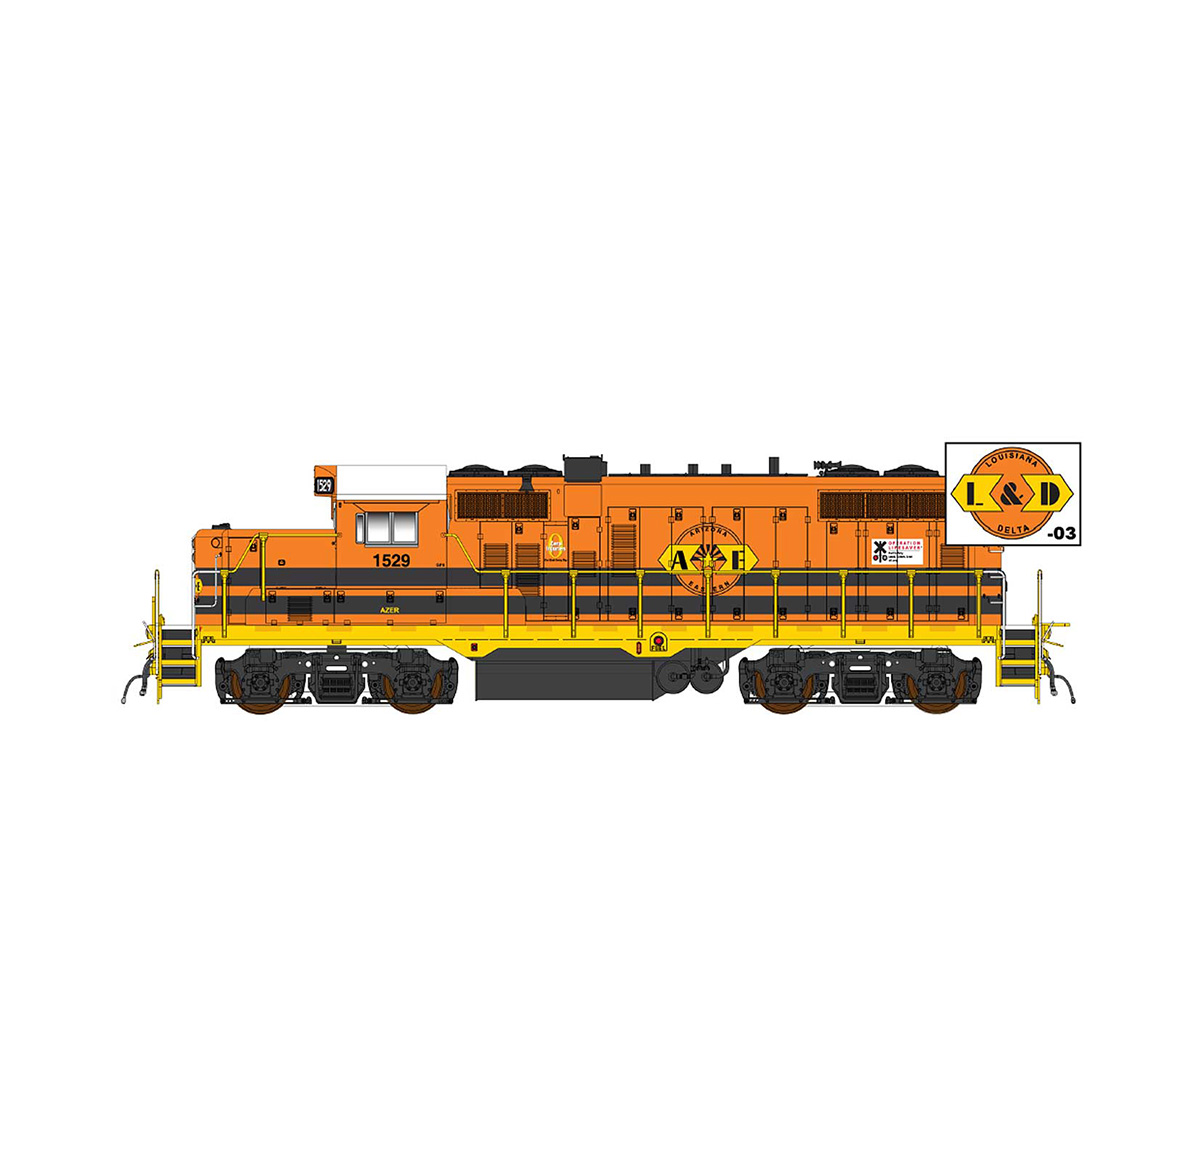 InterMountain 49871S-01 HO EMD GP10 Paducah, ESU LokSound & DCC, G&W/A&E #1529